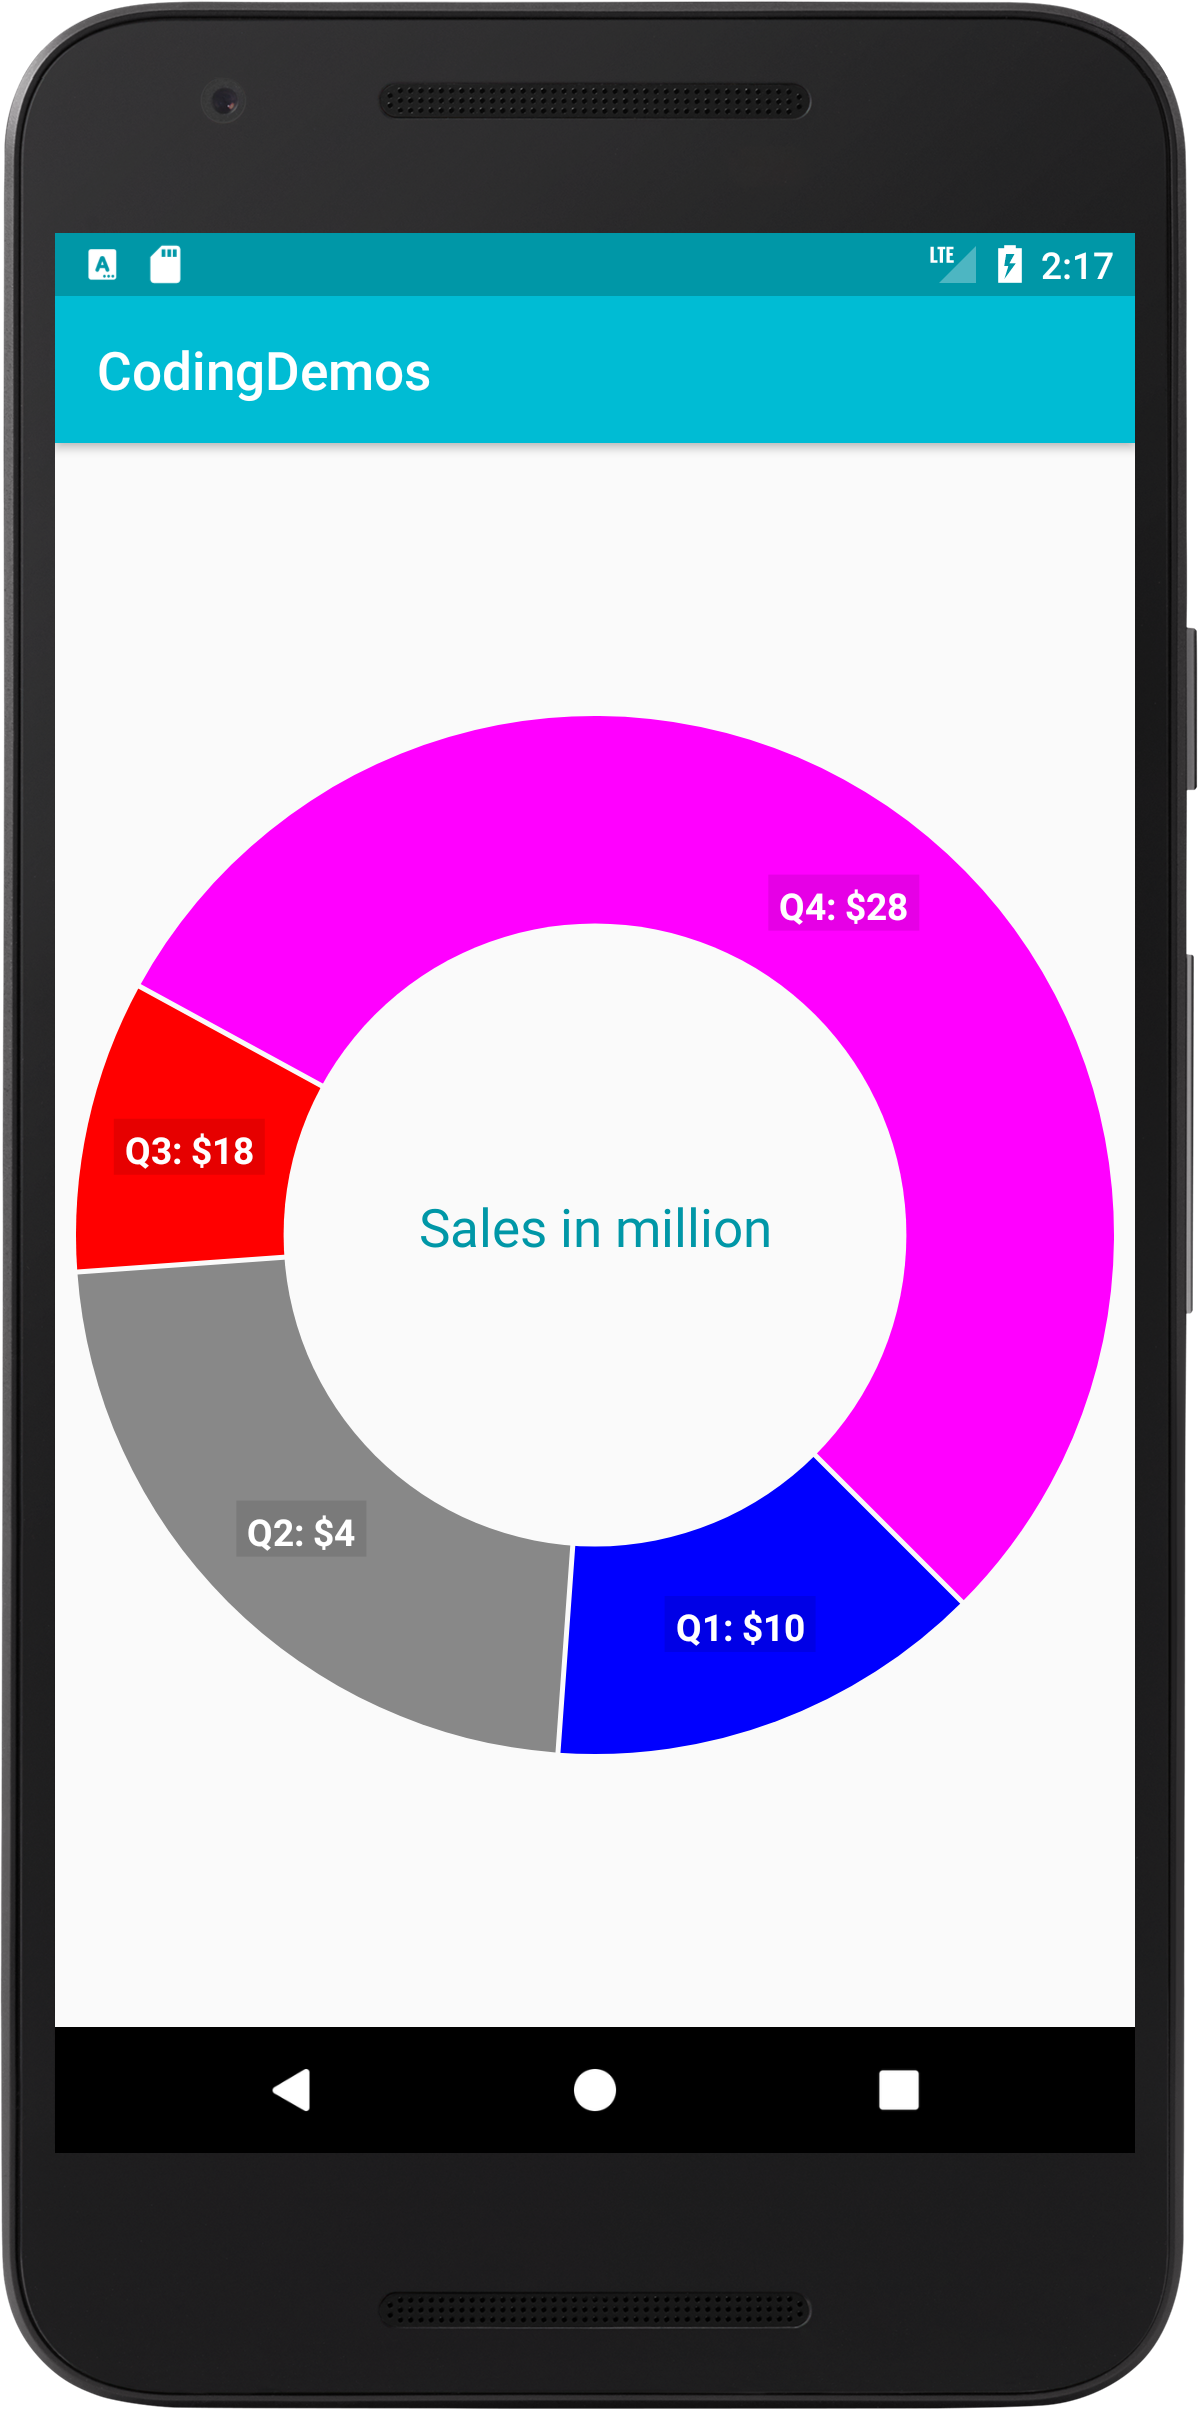 Android Pie Chart - How to Create Pie Chart in Android Studio